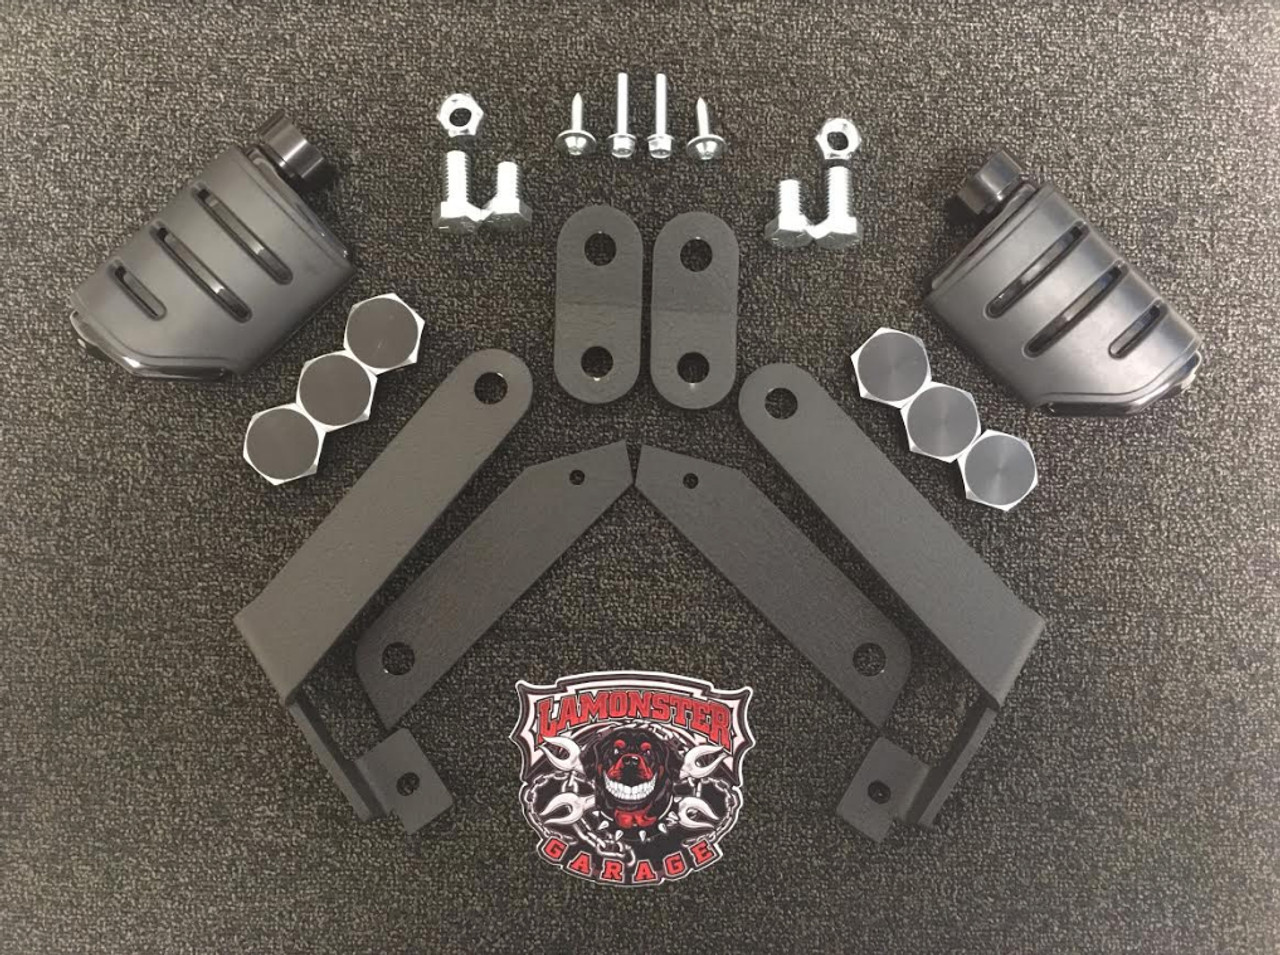 Can Am Spyder RT NBV Highway Brackets (LG-1002-7567) Kuryakyn Dually ISO Pegs. by Lamonster